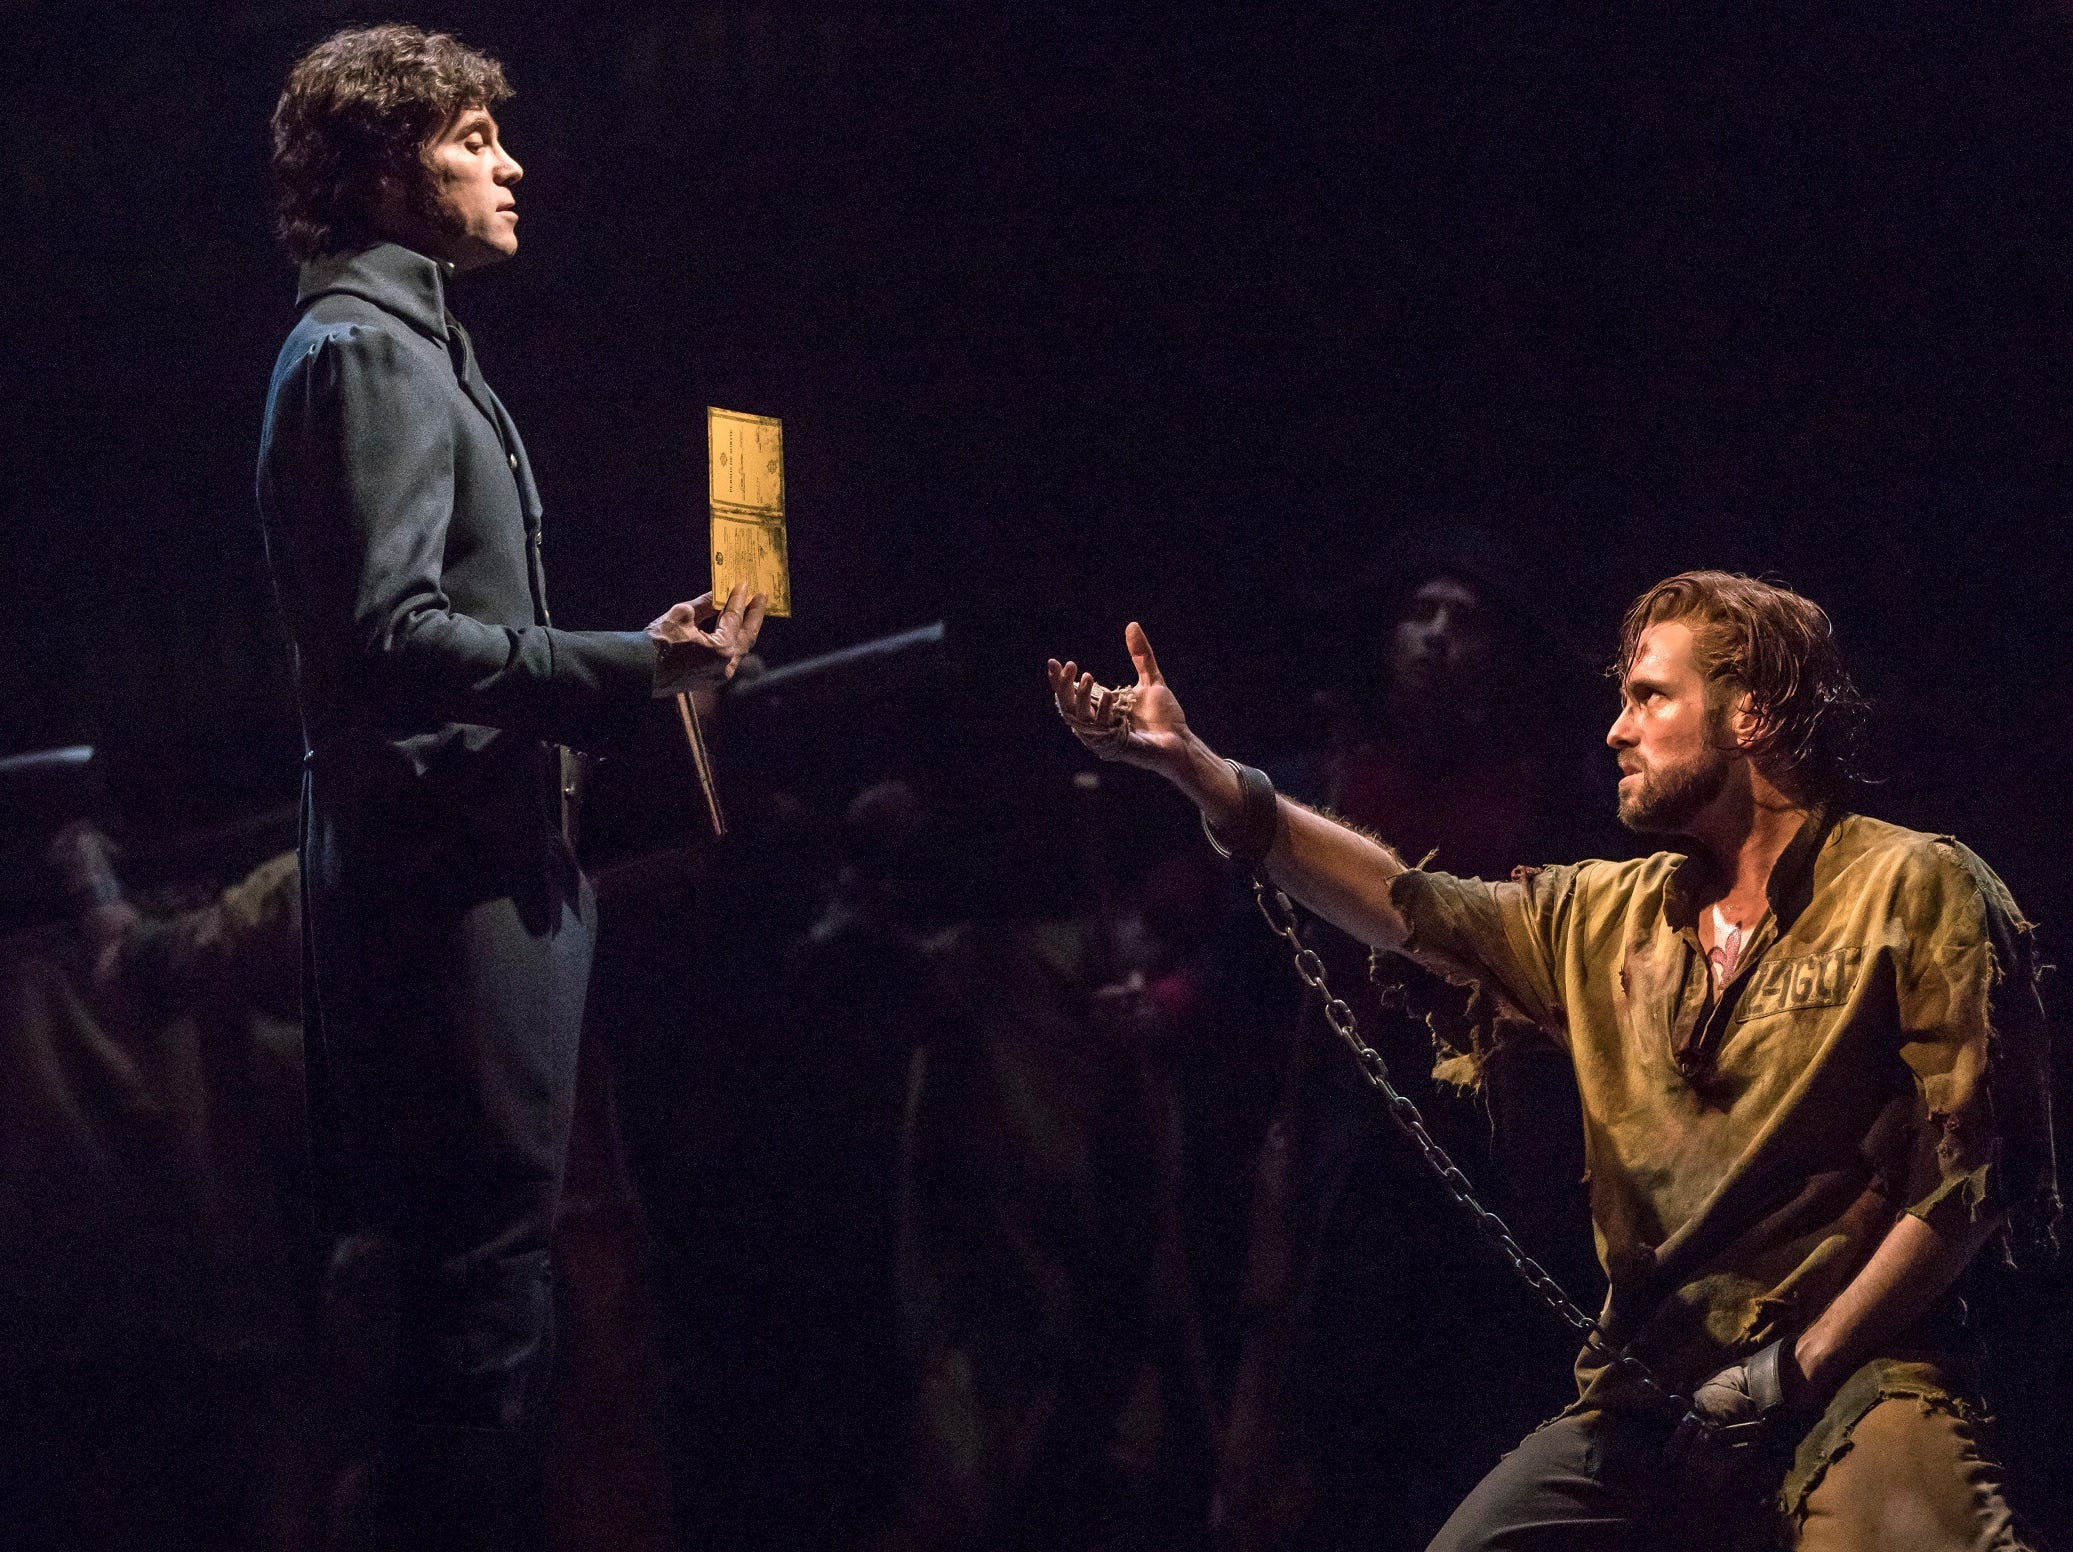 """(From L) Josh Davis as Inspector Javert and Nick Cartell as Jean Valjean in the national tour of """"Les Misérables."""" The show will play the Aronoff Center Feb. 11-23, 2020 as part of the Broadway in Cincinnati series."""